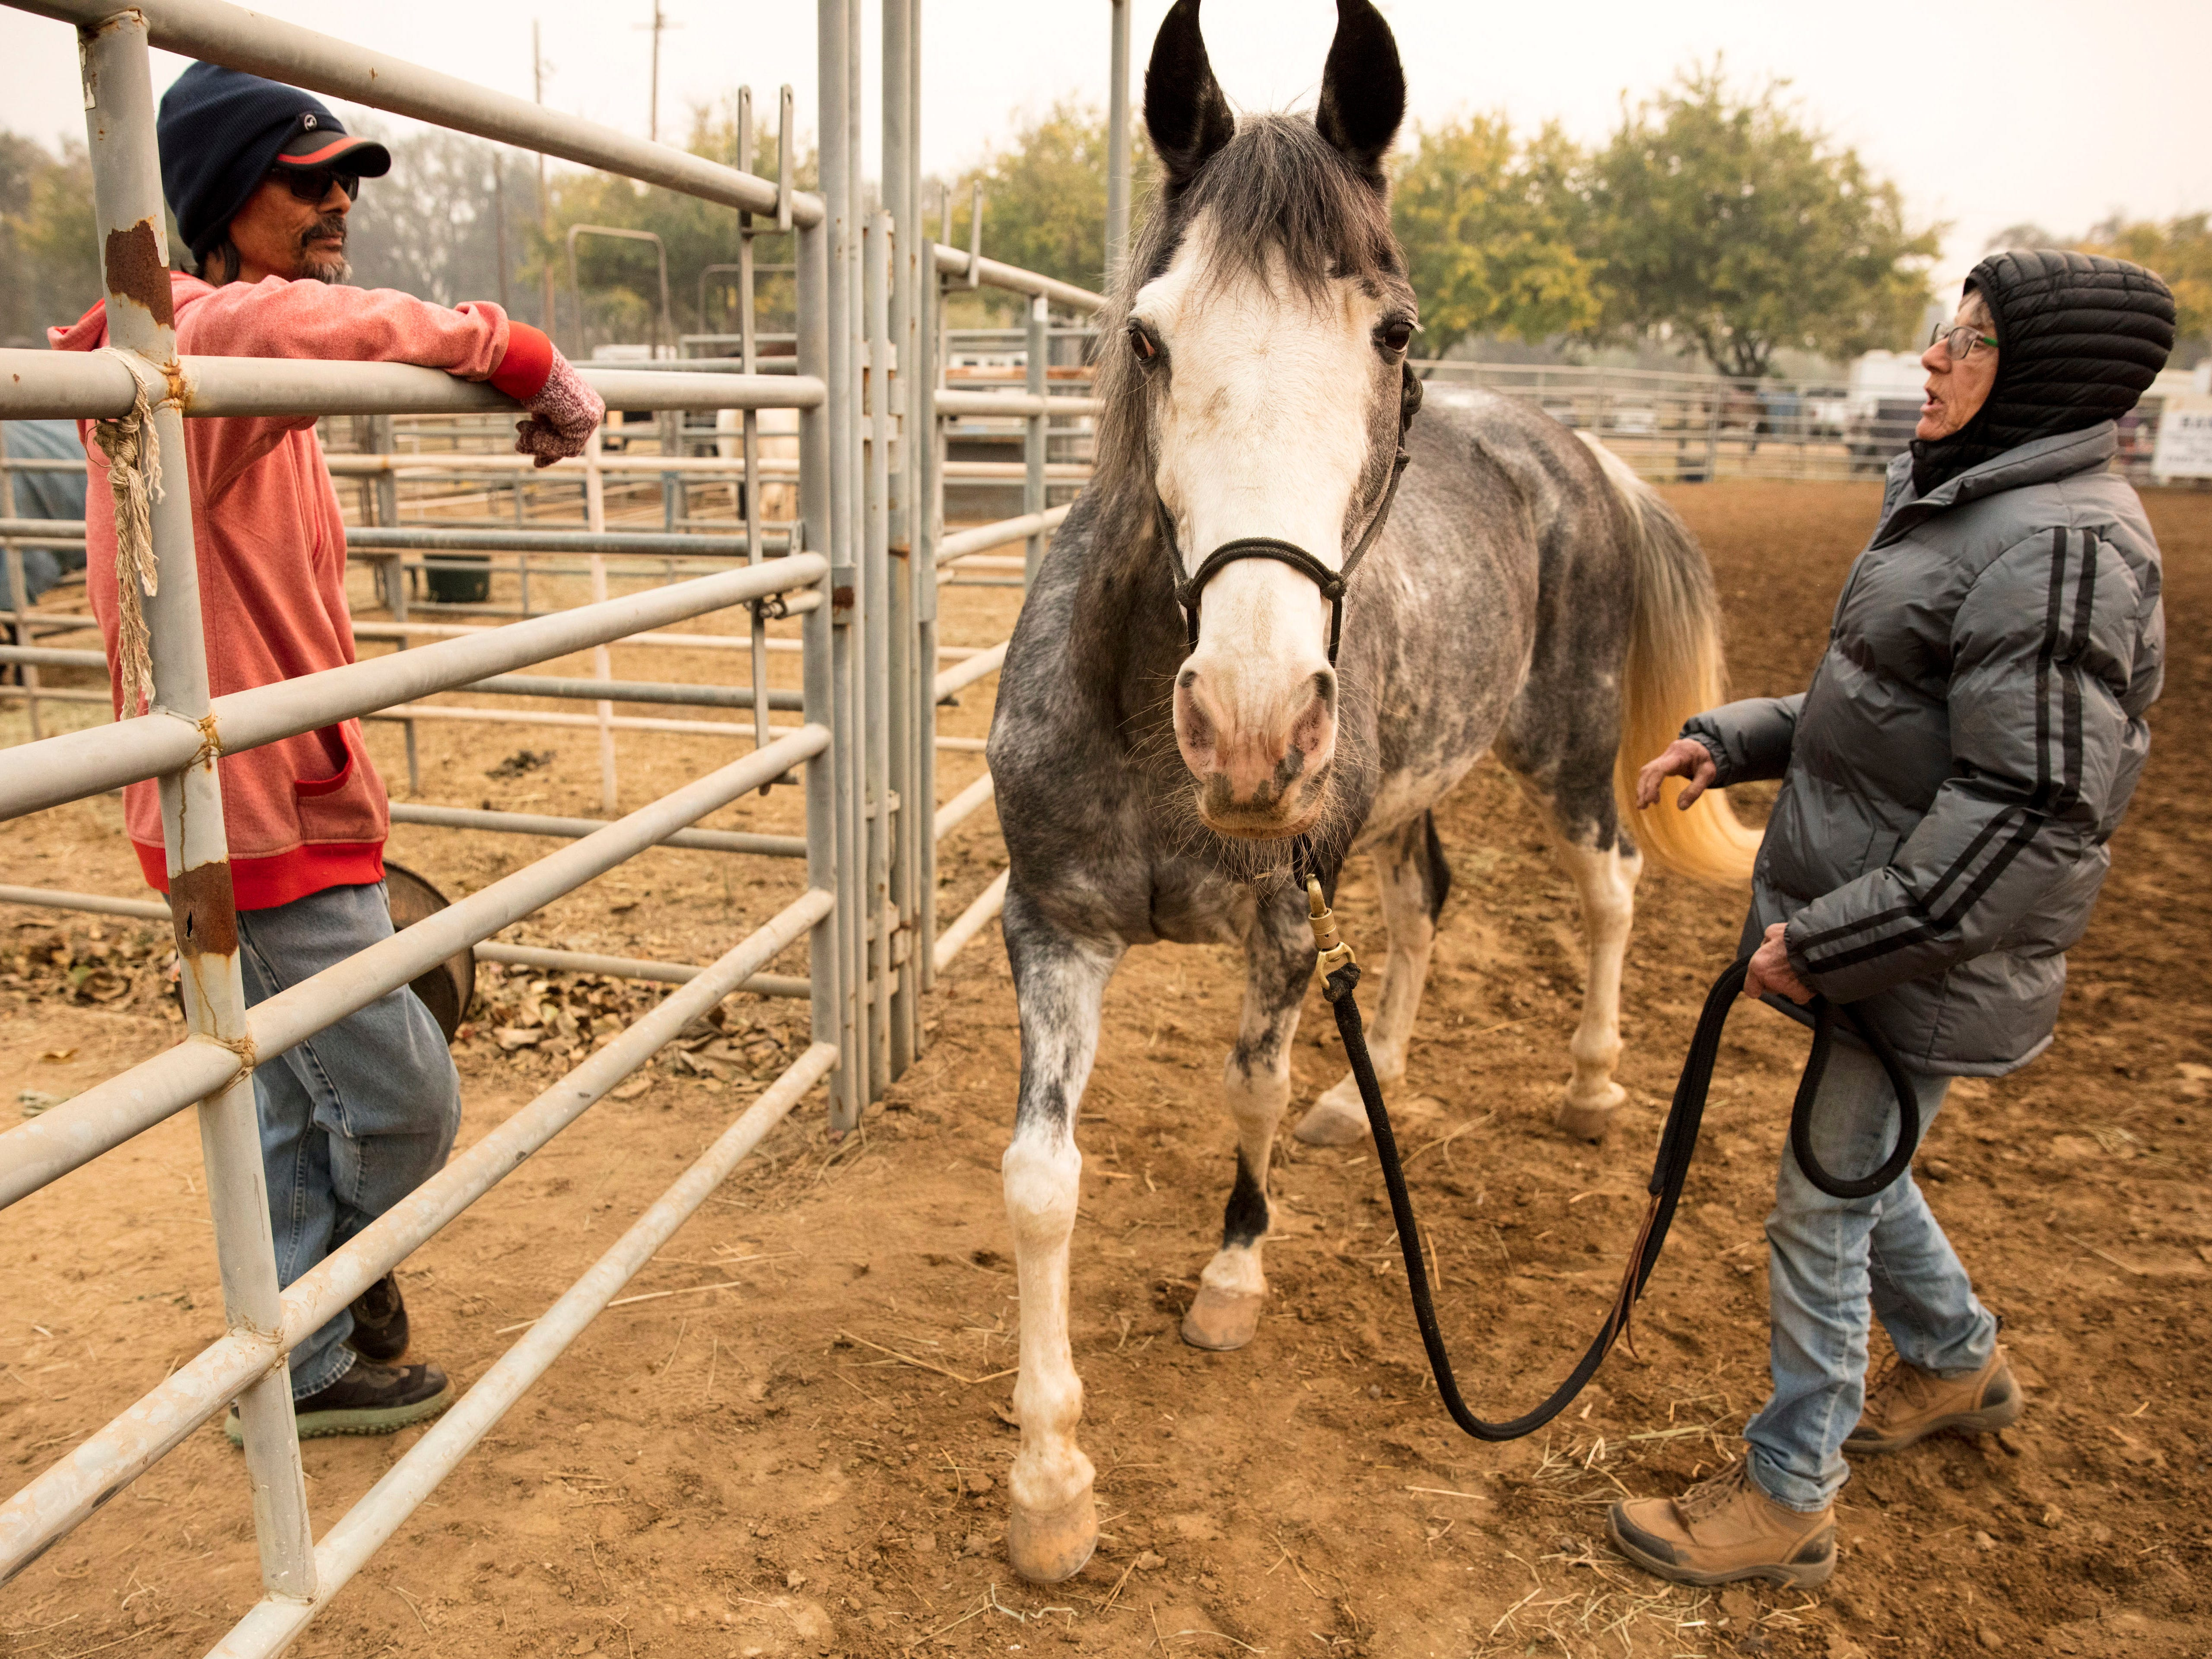 Nikki Borgoin chats with Richard Doynk, who also had his horse temporally penned with her horse, Josie, at the Butte County Fair Grounds where evacuees and there animals stay as the Camp Fire continues to burn in Butte County, Calif., Nov. 10, 2018.